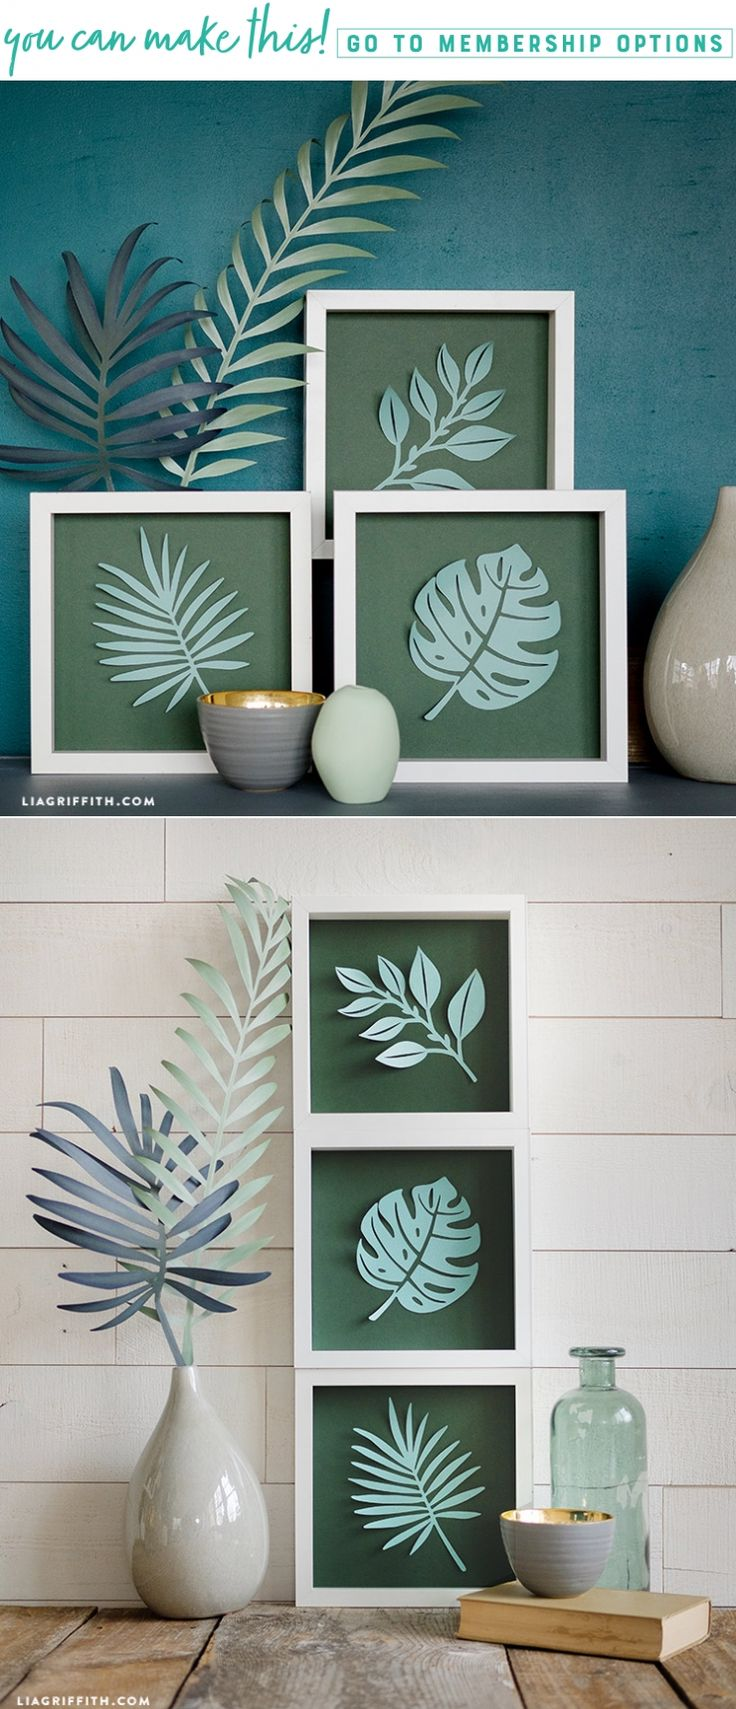 Picture Perfect Paradise  You fell in love with our papercut botanical poster so we're taking you back to the tropics with these super simple framed paper-cut tropical leaves. Would you believe this project is only 4 steps?! Craft them with us today https://liagriffith.com/framed-papercut-tropical-leaves/ * * * #tropical #tropicalhouse #tropicalvibes #diy #diyproject #simplediy #easydiy #botanical #diyhome #diydecor #diydecorations #jungle #paper #papercut #paperart #paperproject #diyidea…